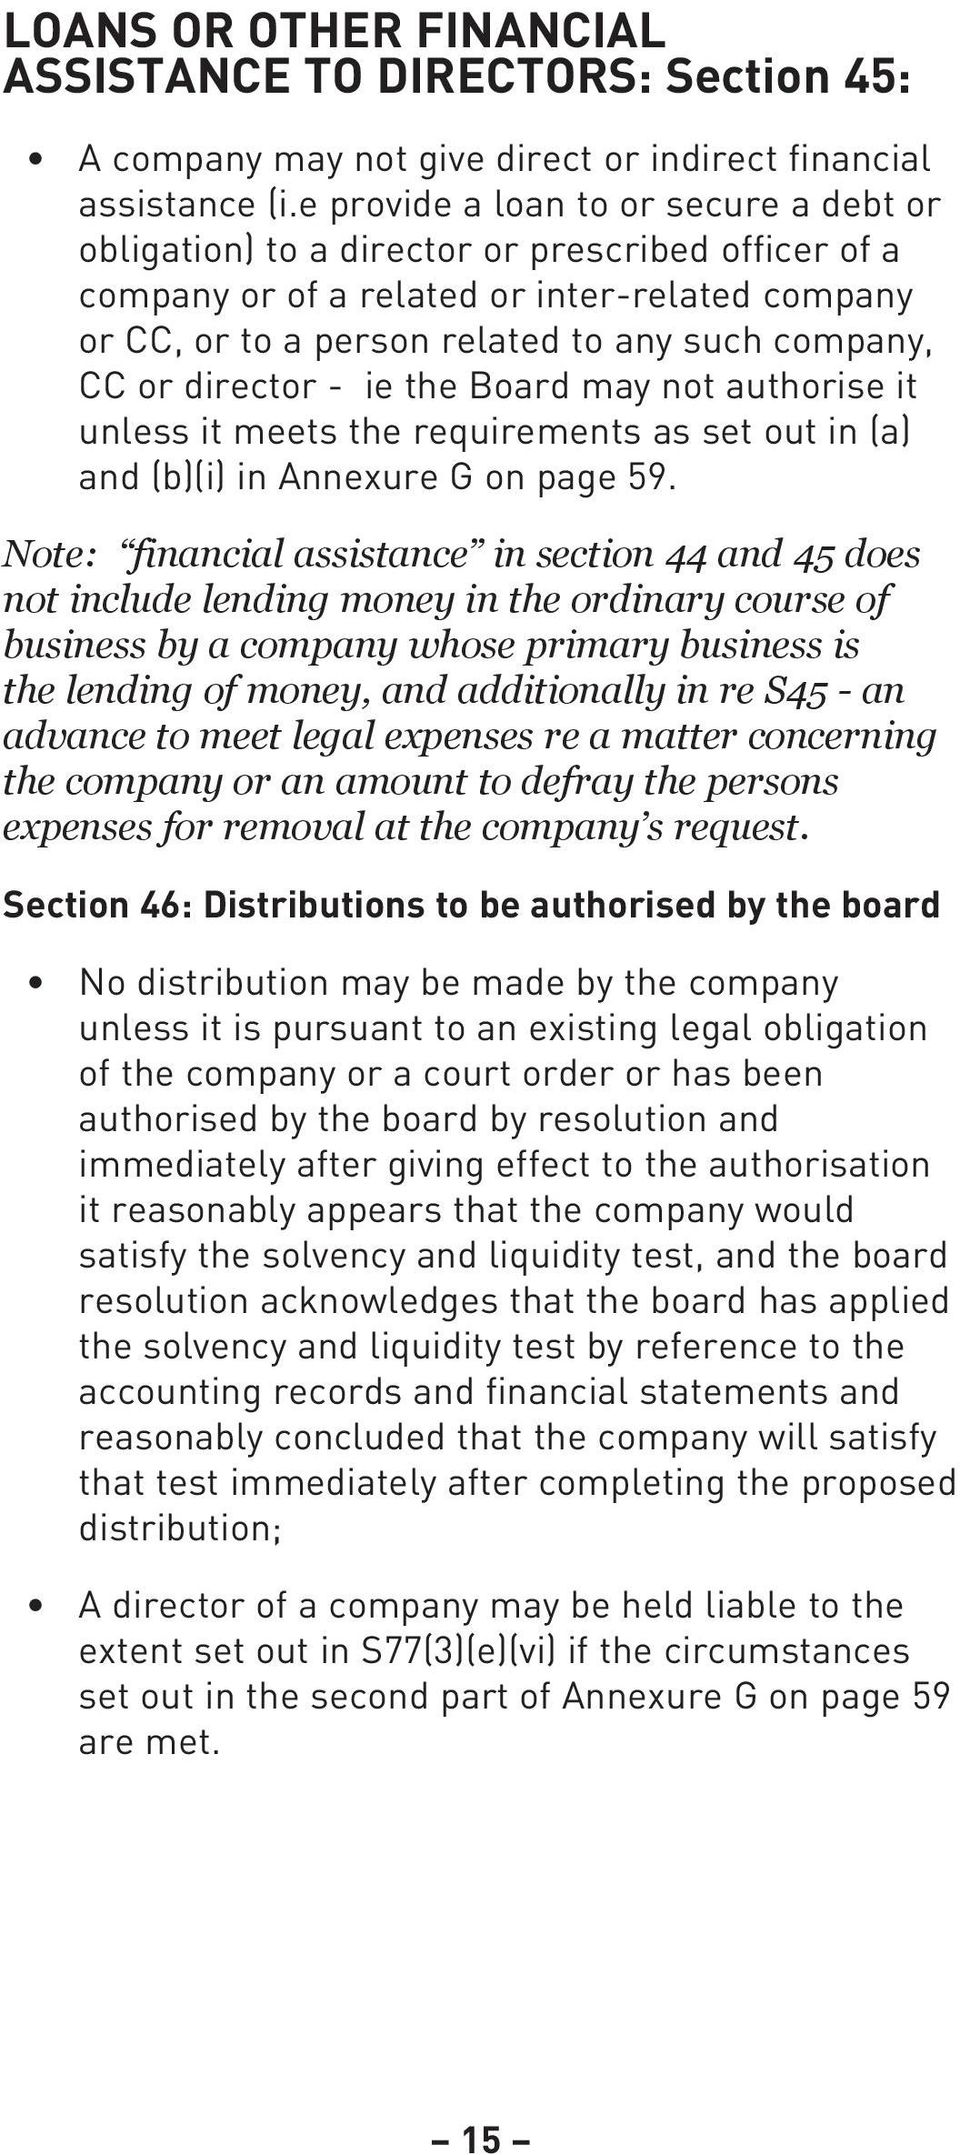 director - ie the Board may not authorise it unless it meets the requirements as set out in (a) and (b)(i) in Annexure G on page 59.